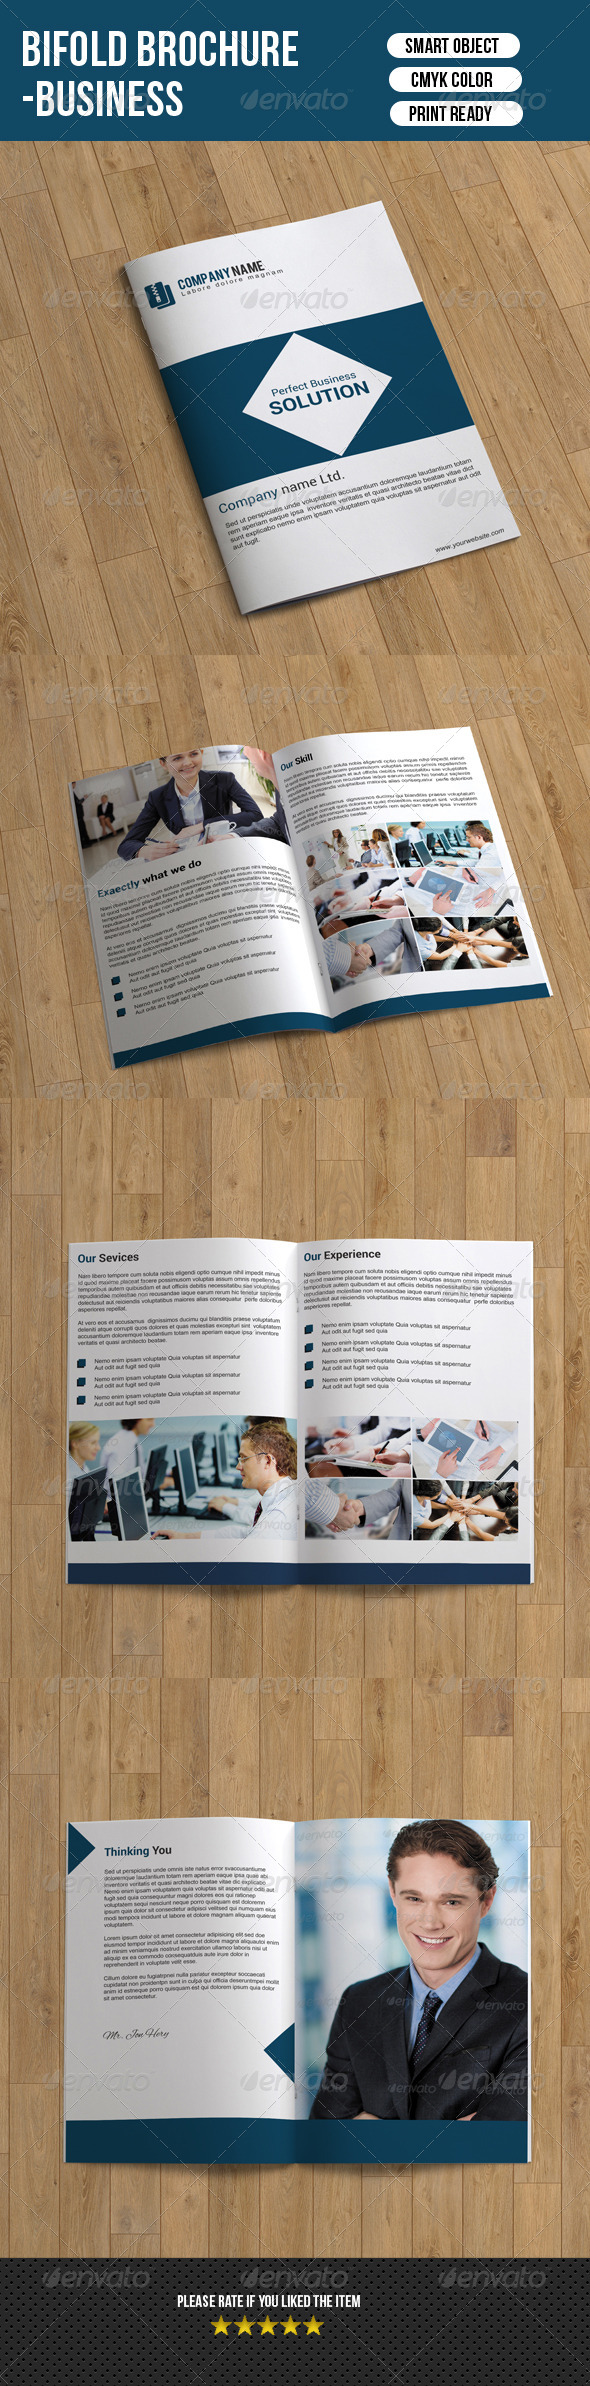 GraphicRiver Business Brochure-8 Pages 7317620